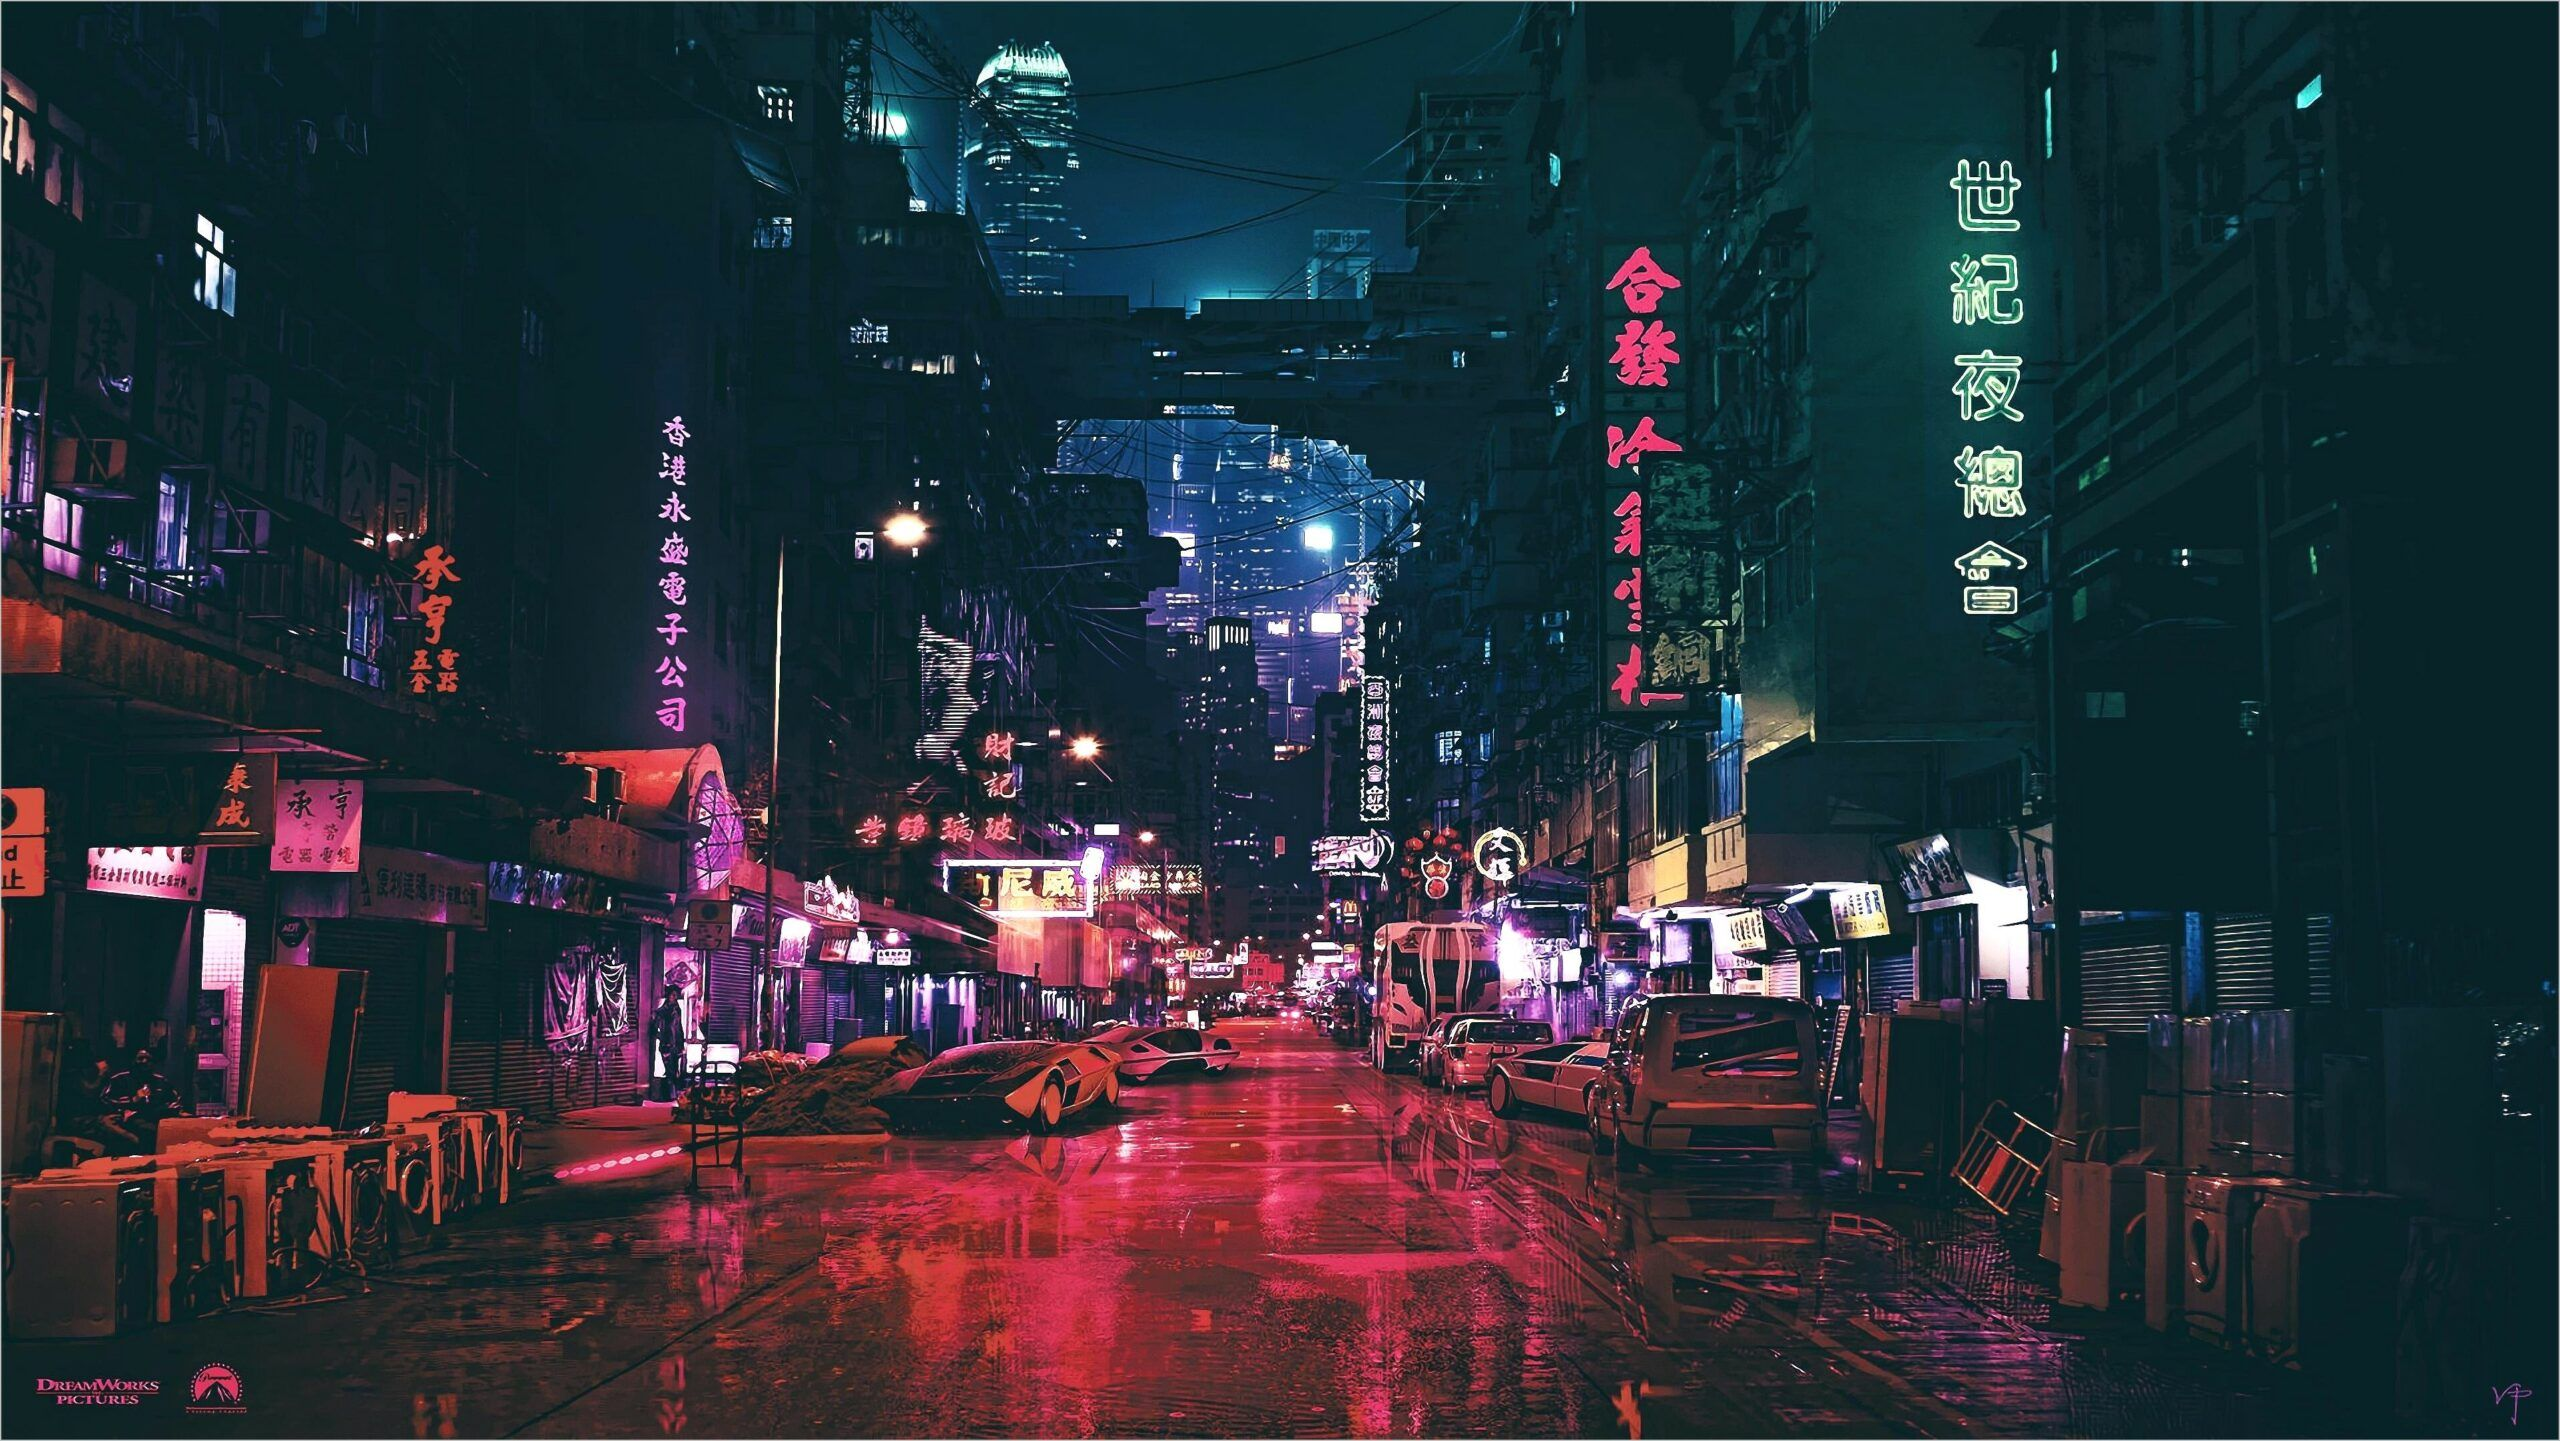 Anime Background Wallpaper 4k Lofi In 2020 City Wallpaper Futuristic City Cyberpunk City